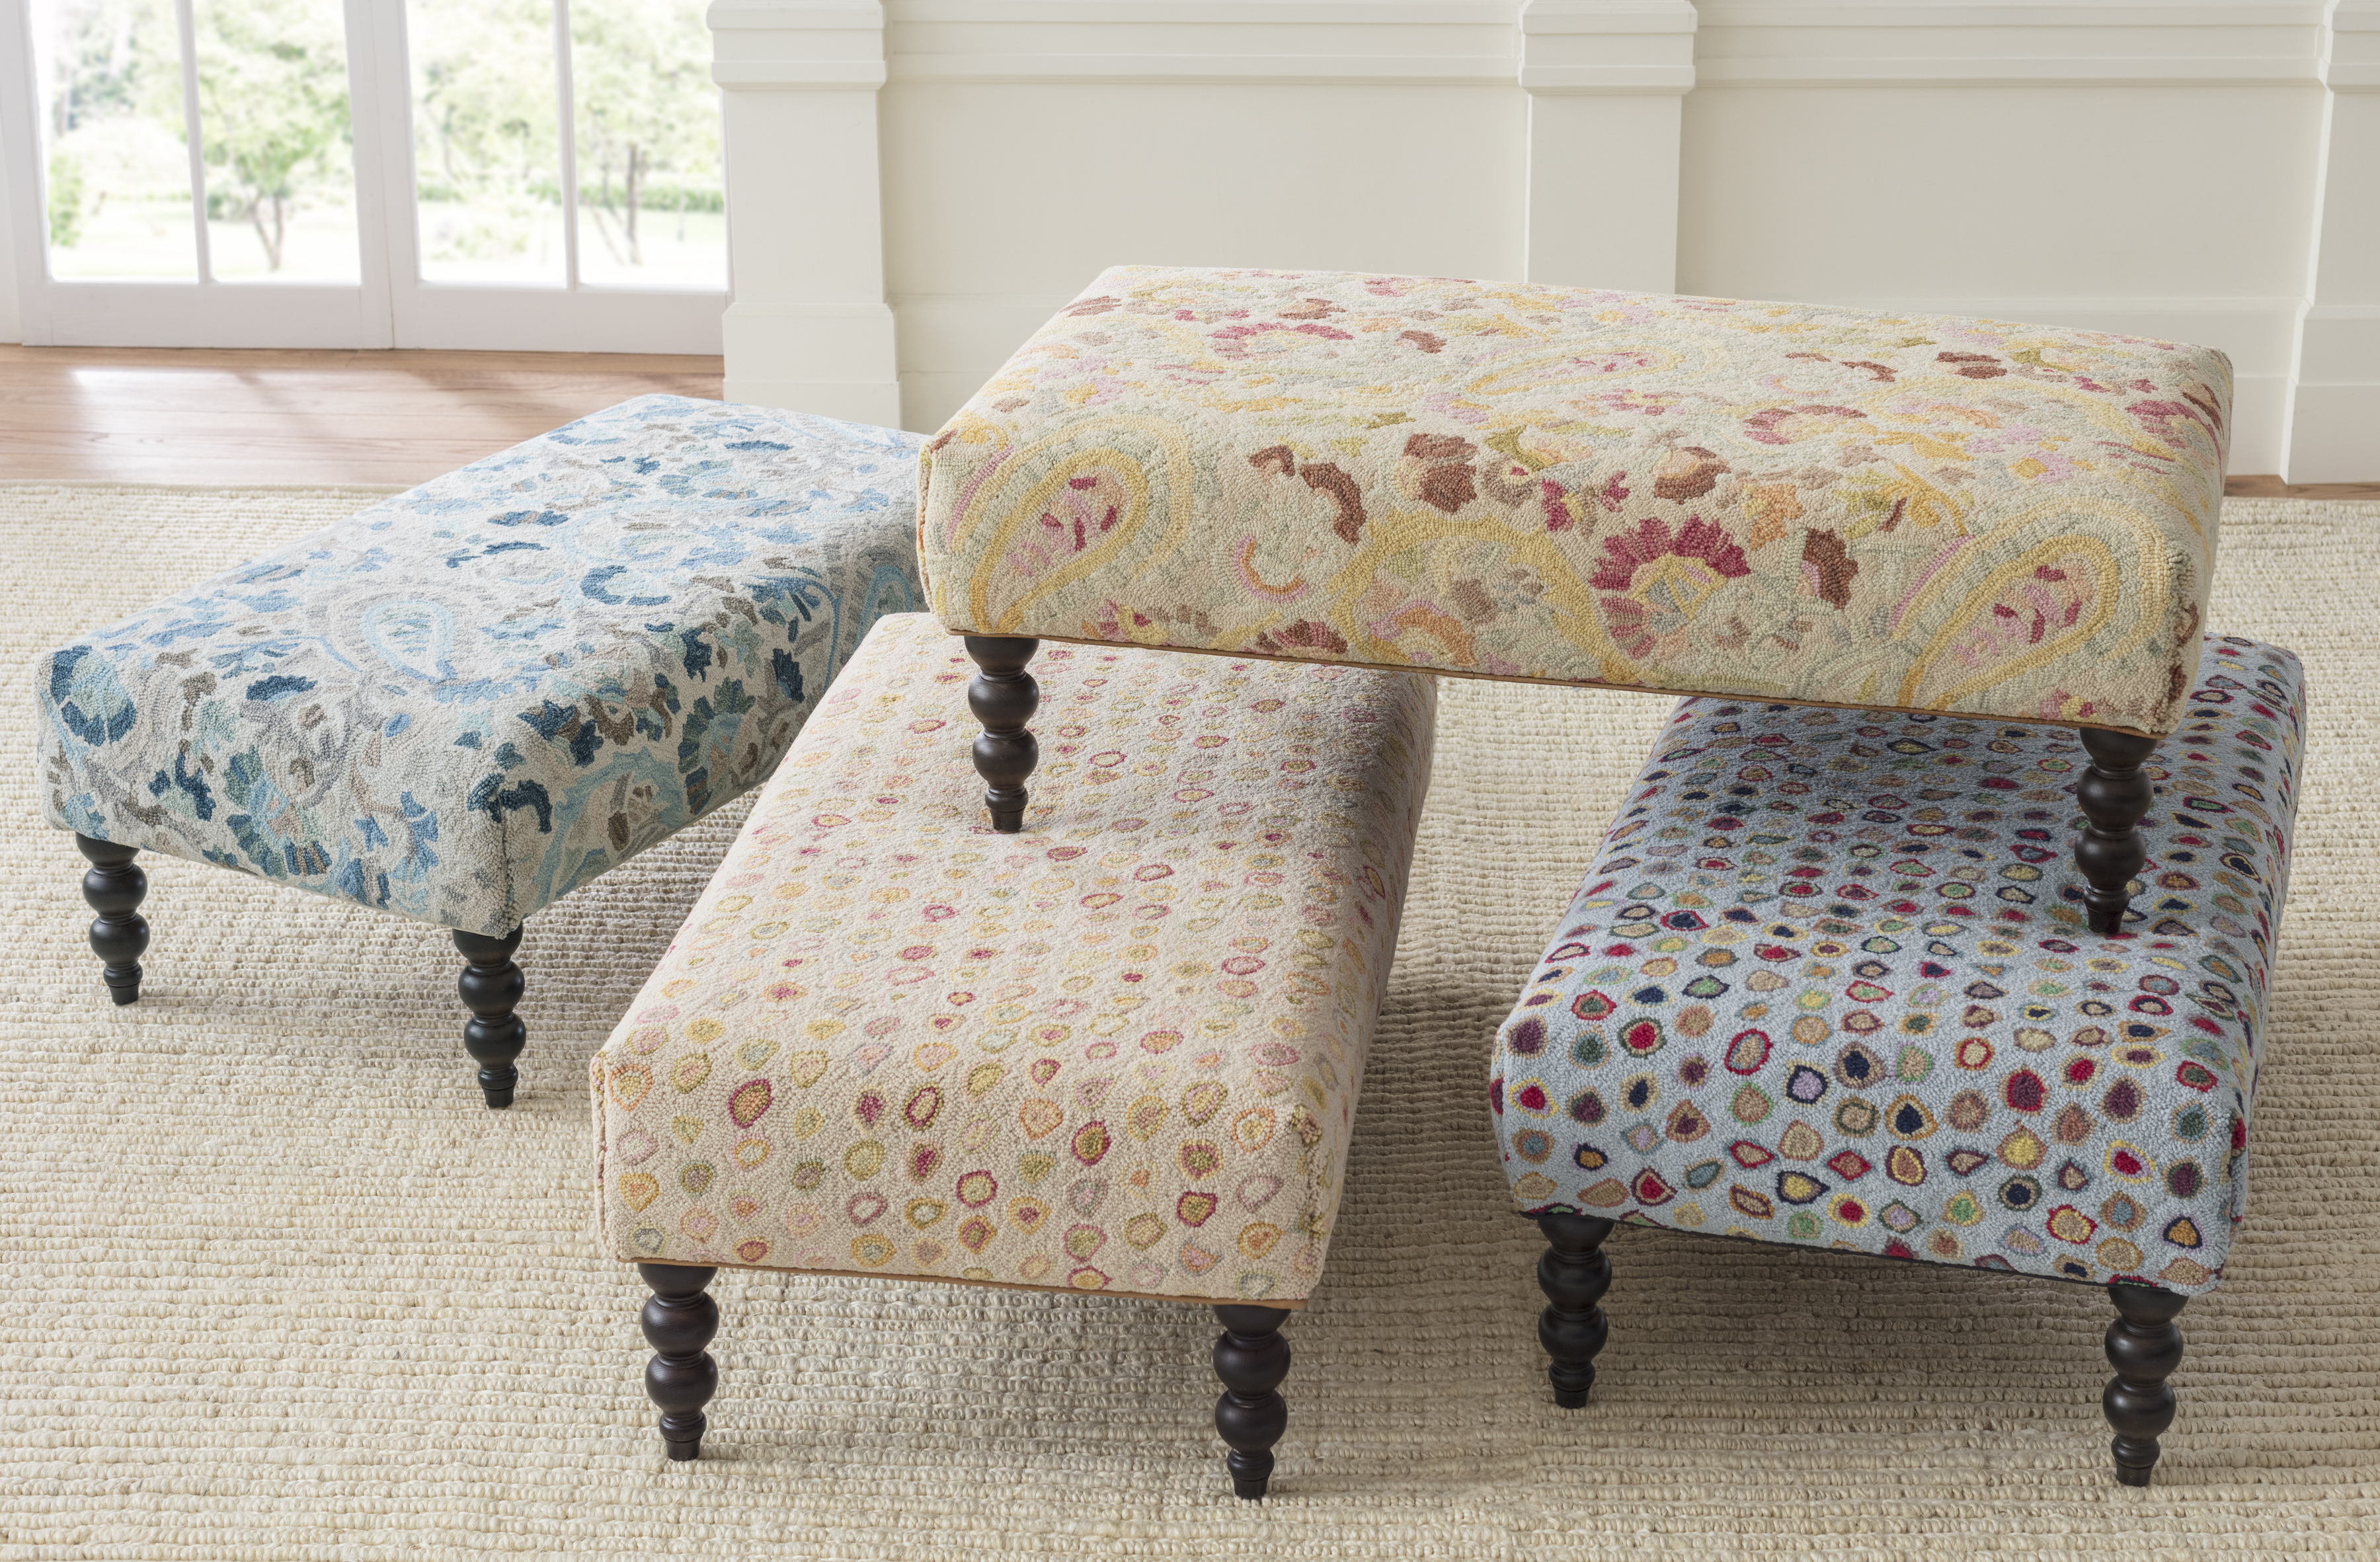 School of Decorating: Get in the Hot Seat with our Ever Popular Rug Ottomans   Annie Selke's Fresh American Style